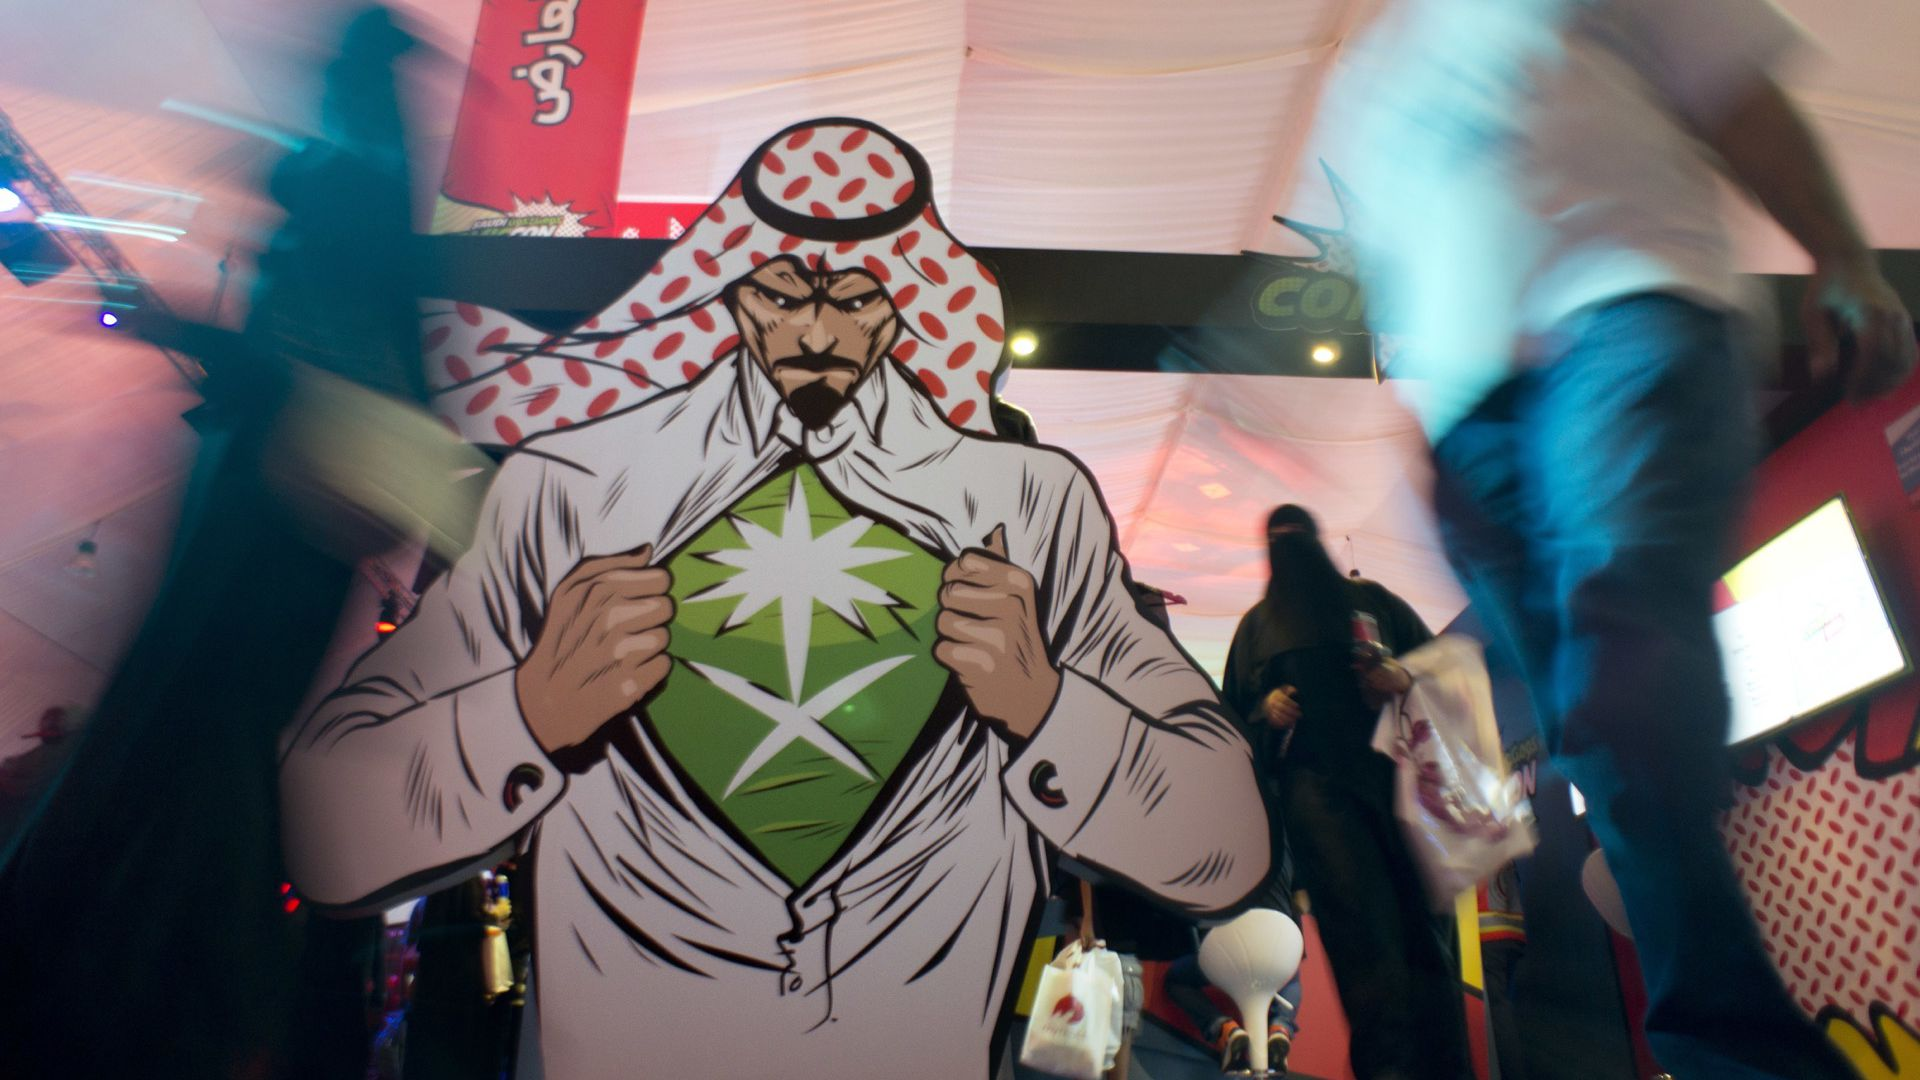 A sign at Saudi Comic Con